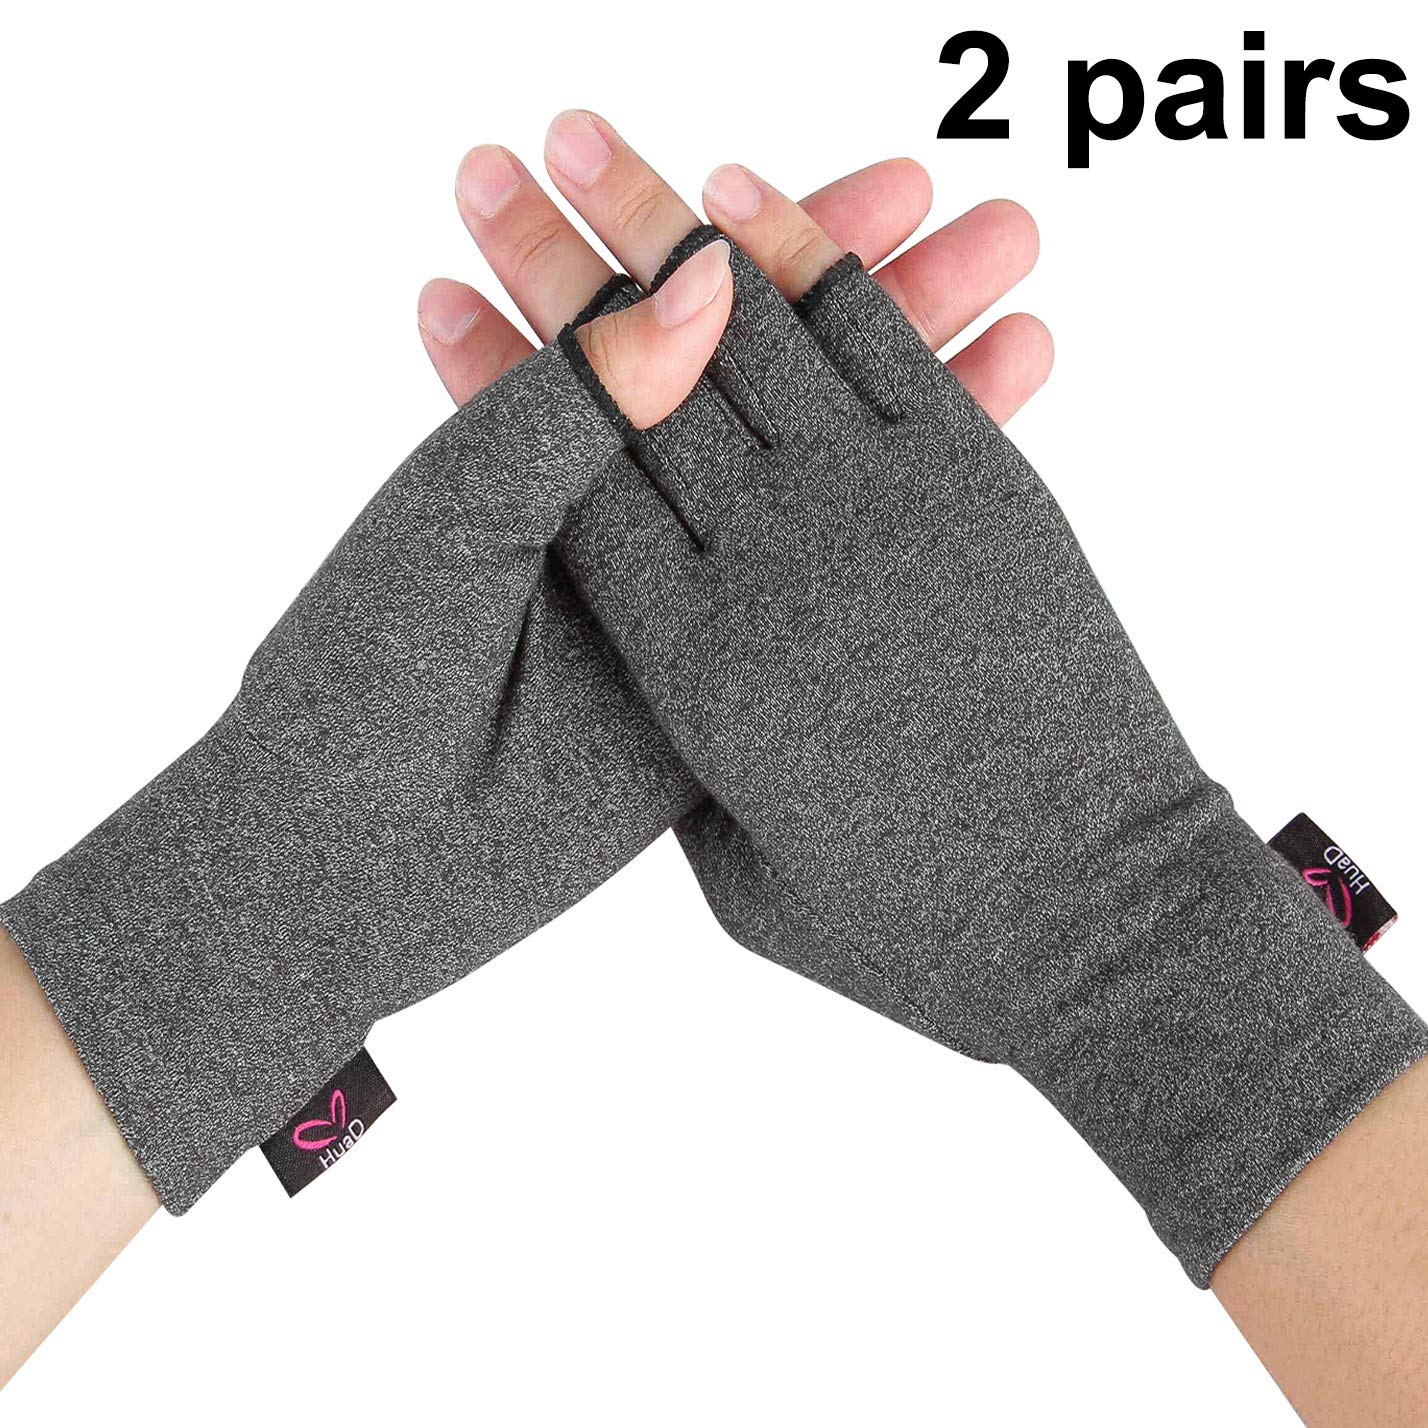 915e388a39 2 Pairs - Compression Arthritis Gloves for Women and Men, Fingerless Design  to Relieve Pain